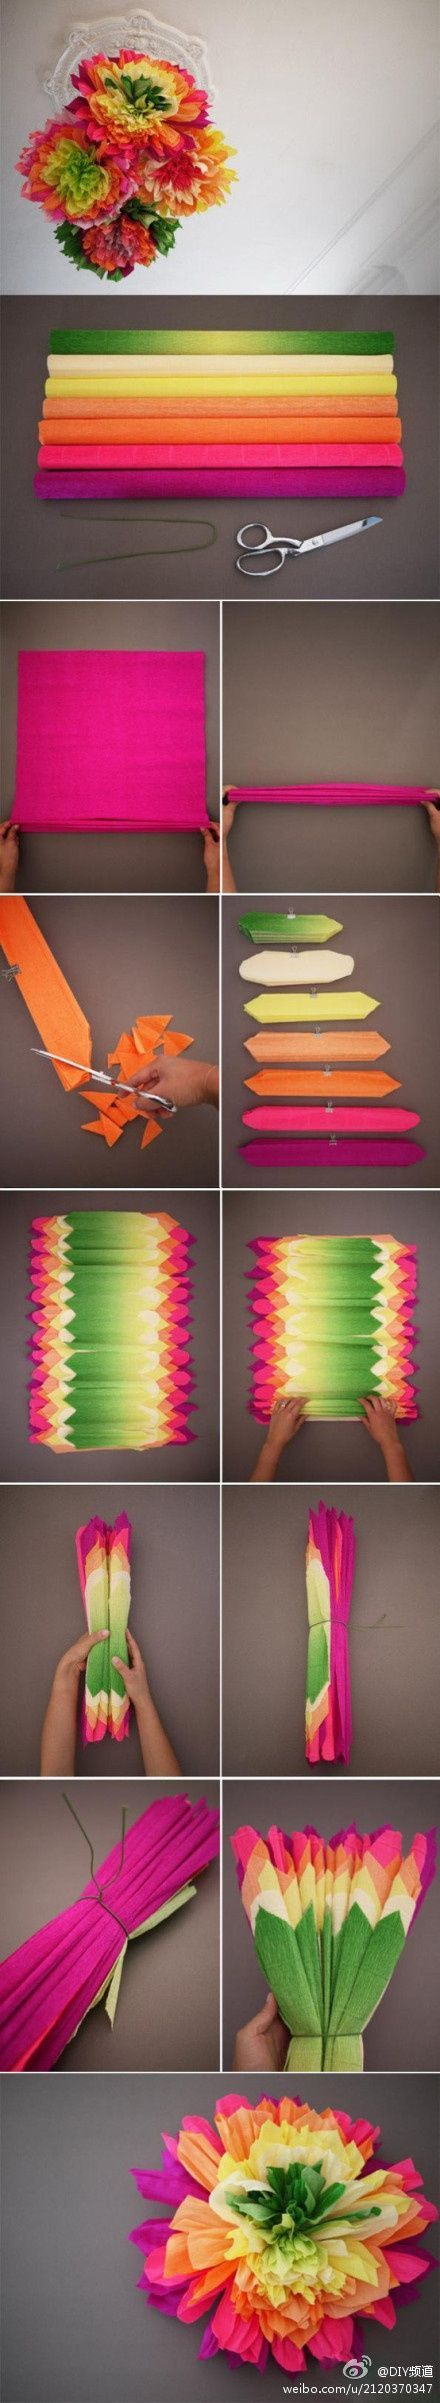 Diy Big Tissue Paper Flowers For Parties And Entertaining - Most Inspiring Pictures And Photos!